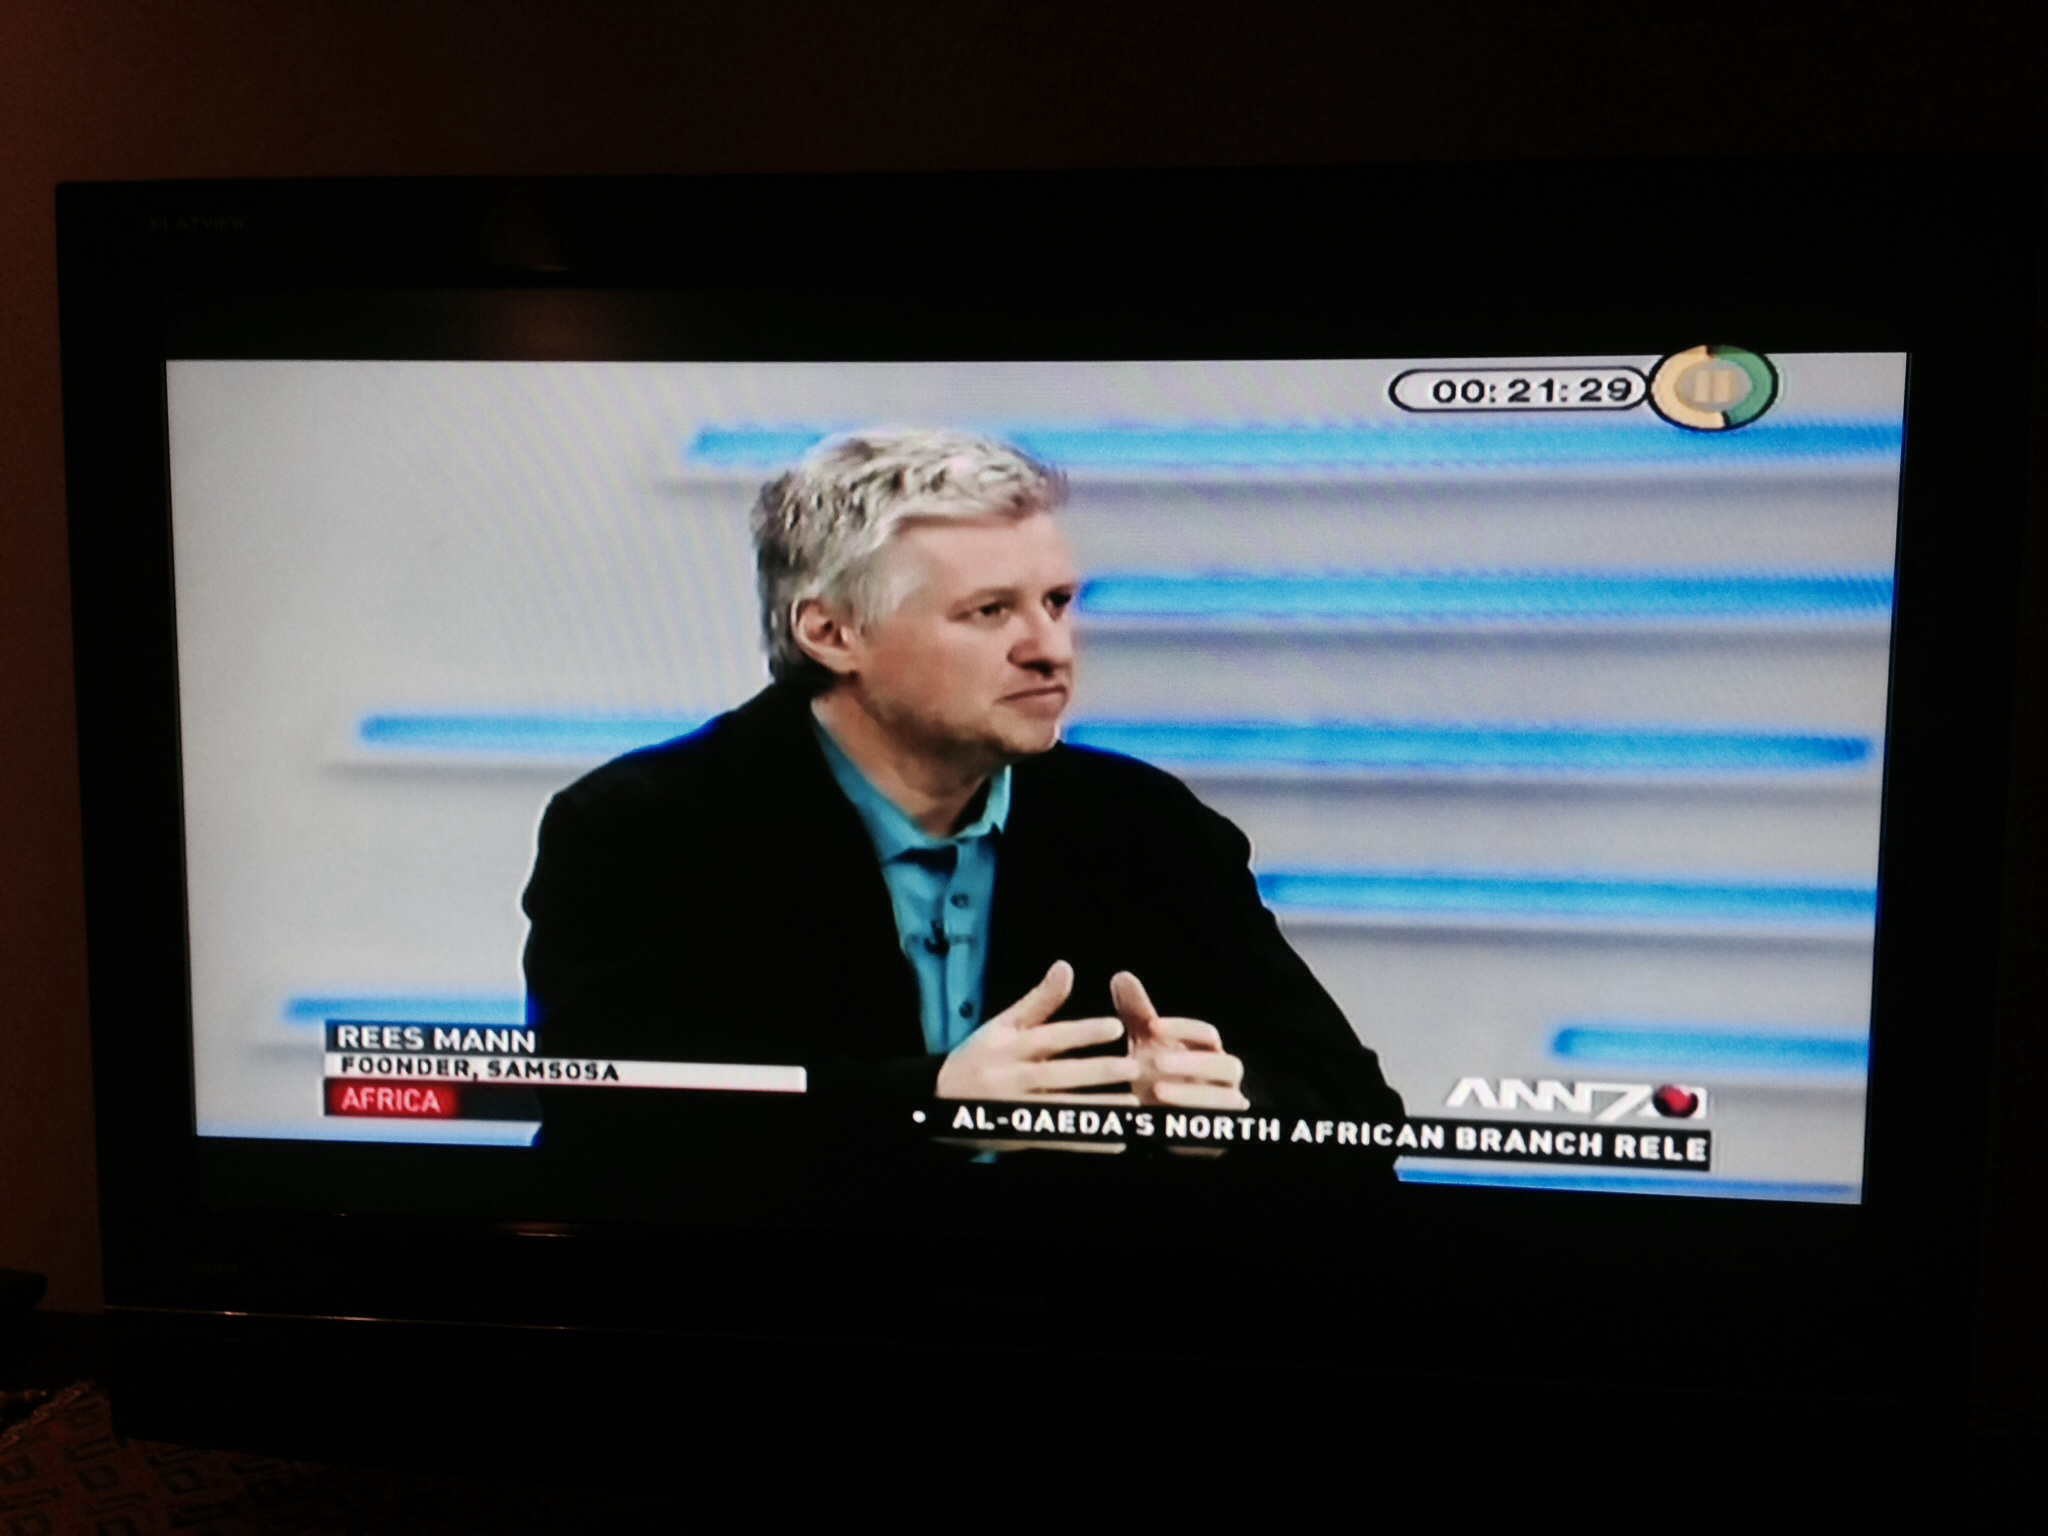 LIVE INTERVIEW ON ANN7 ON THE SAMSOSA LAUNCH